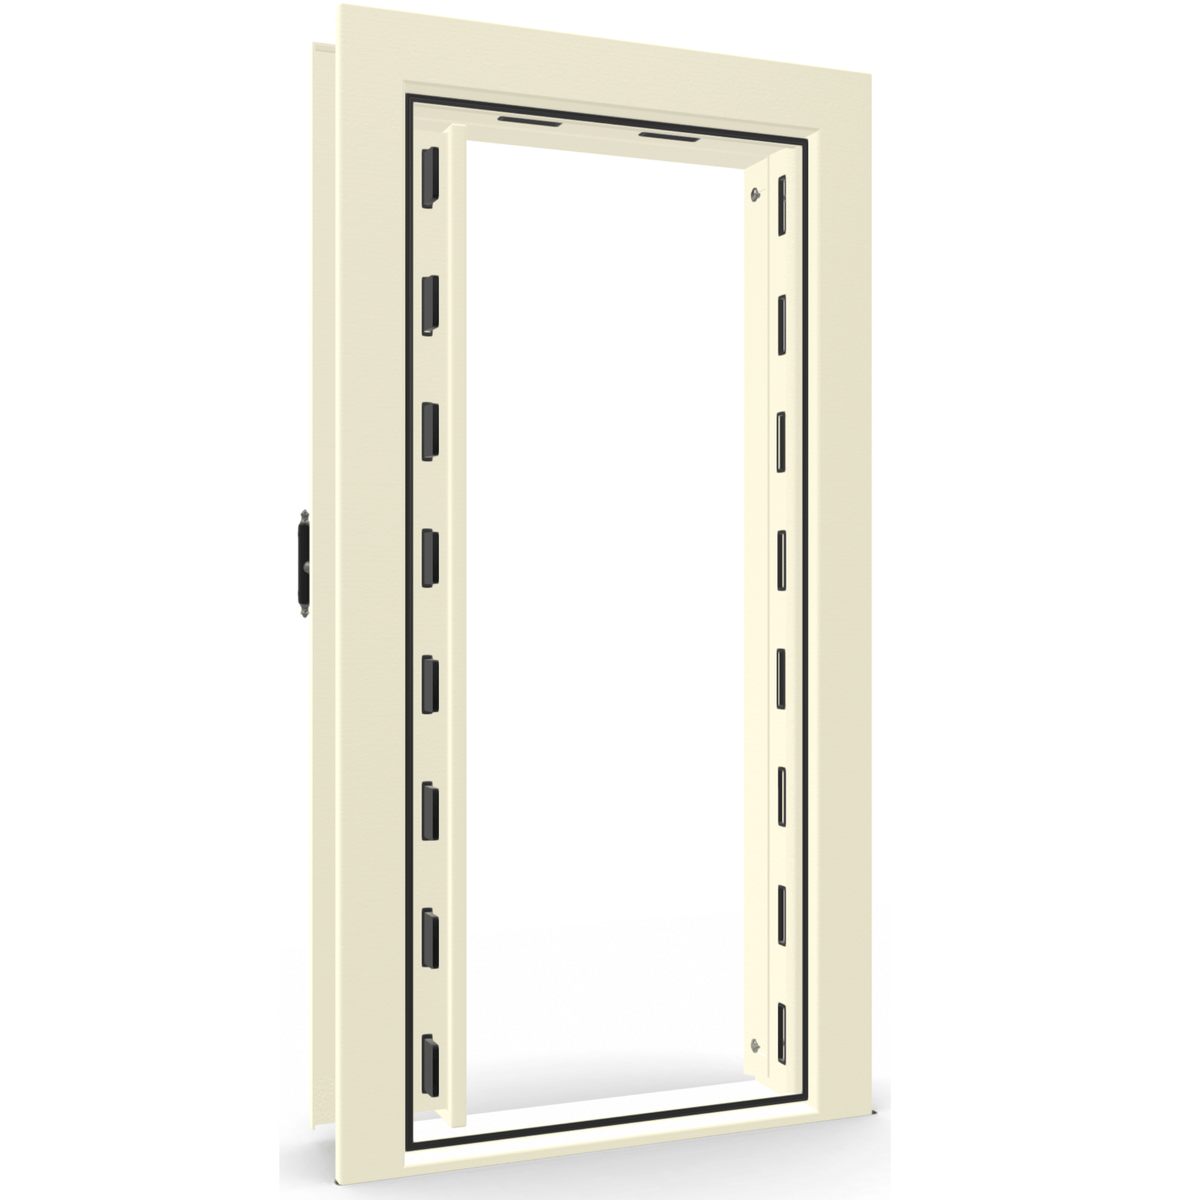 Vault Door Series | Out-Swing | Right Hinge | Black Gloss | Electronic Lock